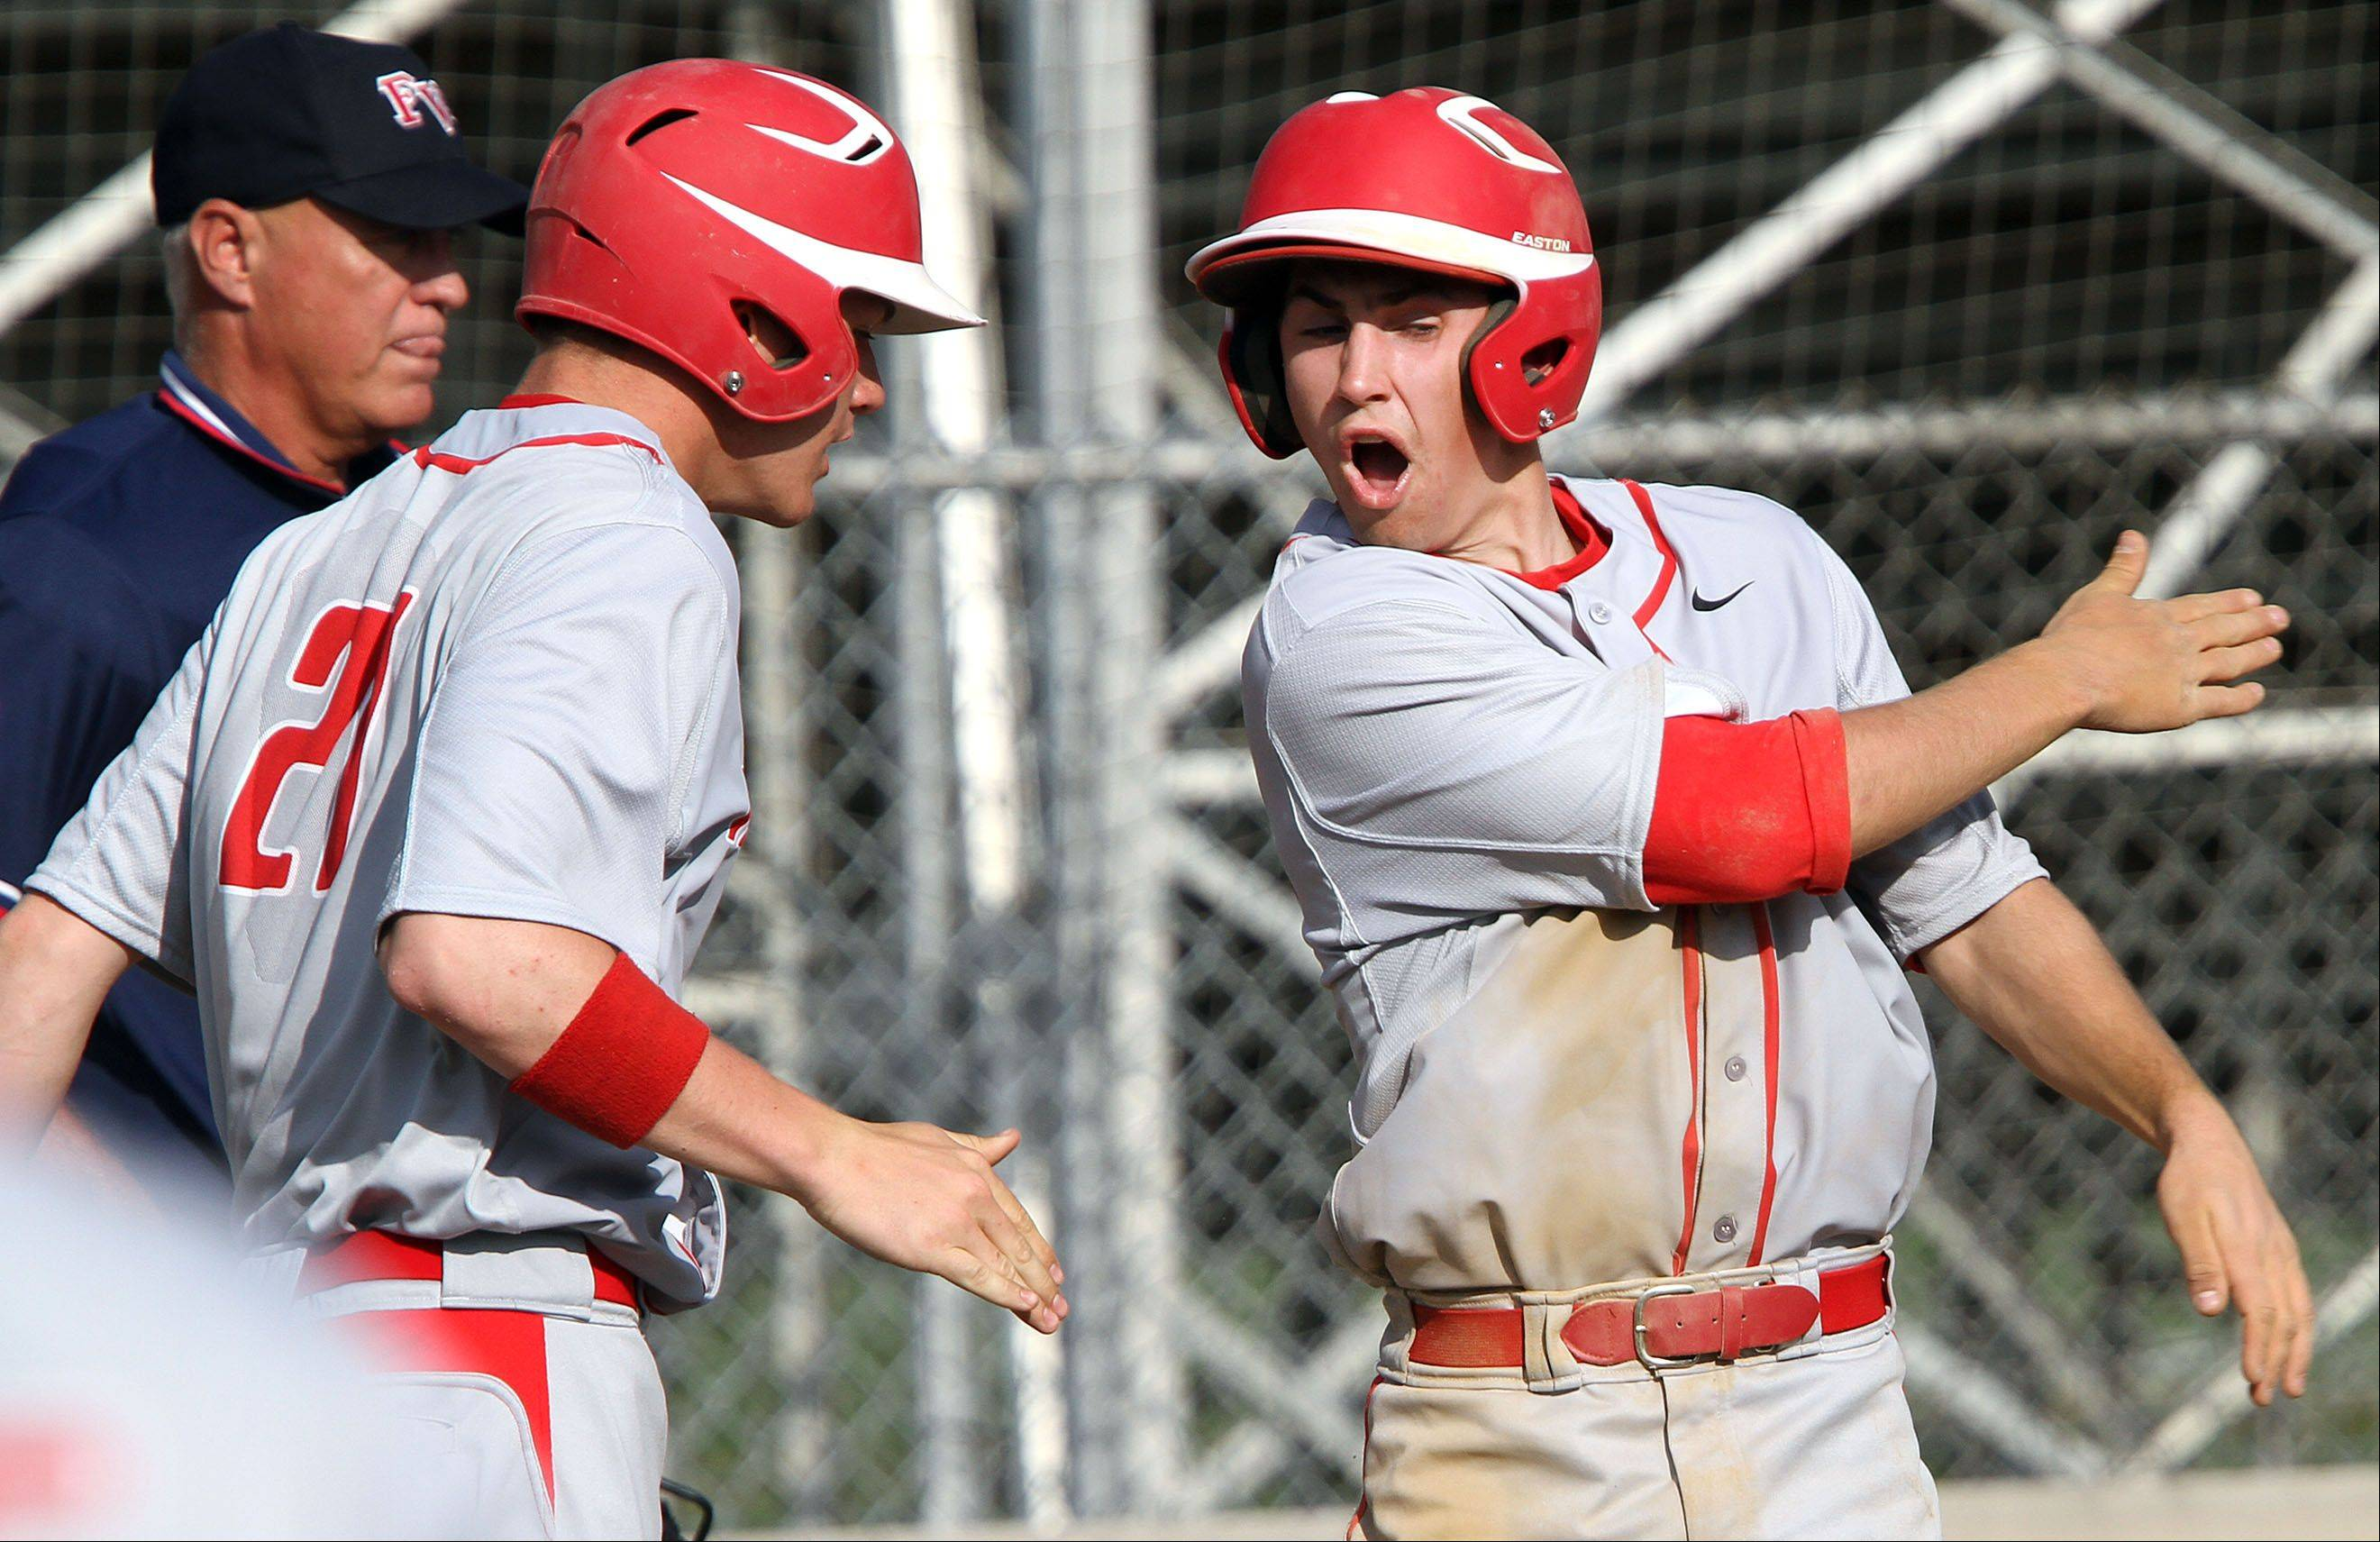 Mundelein�s Zach Osisek, right, high fives teammate Luke Adams after Osisek scored Wednesday in Libertyville.